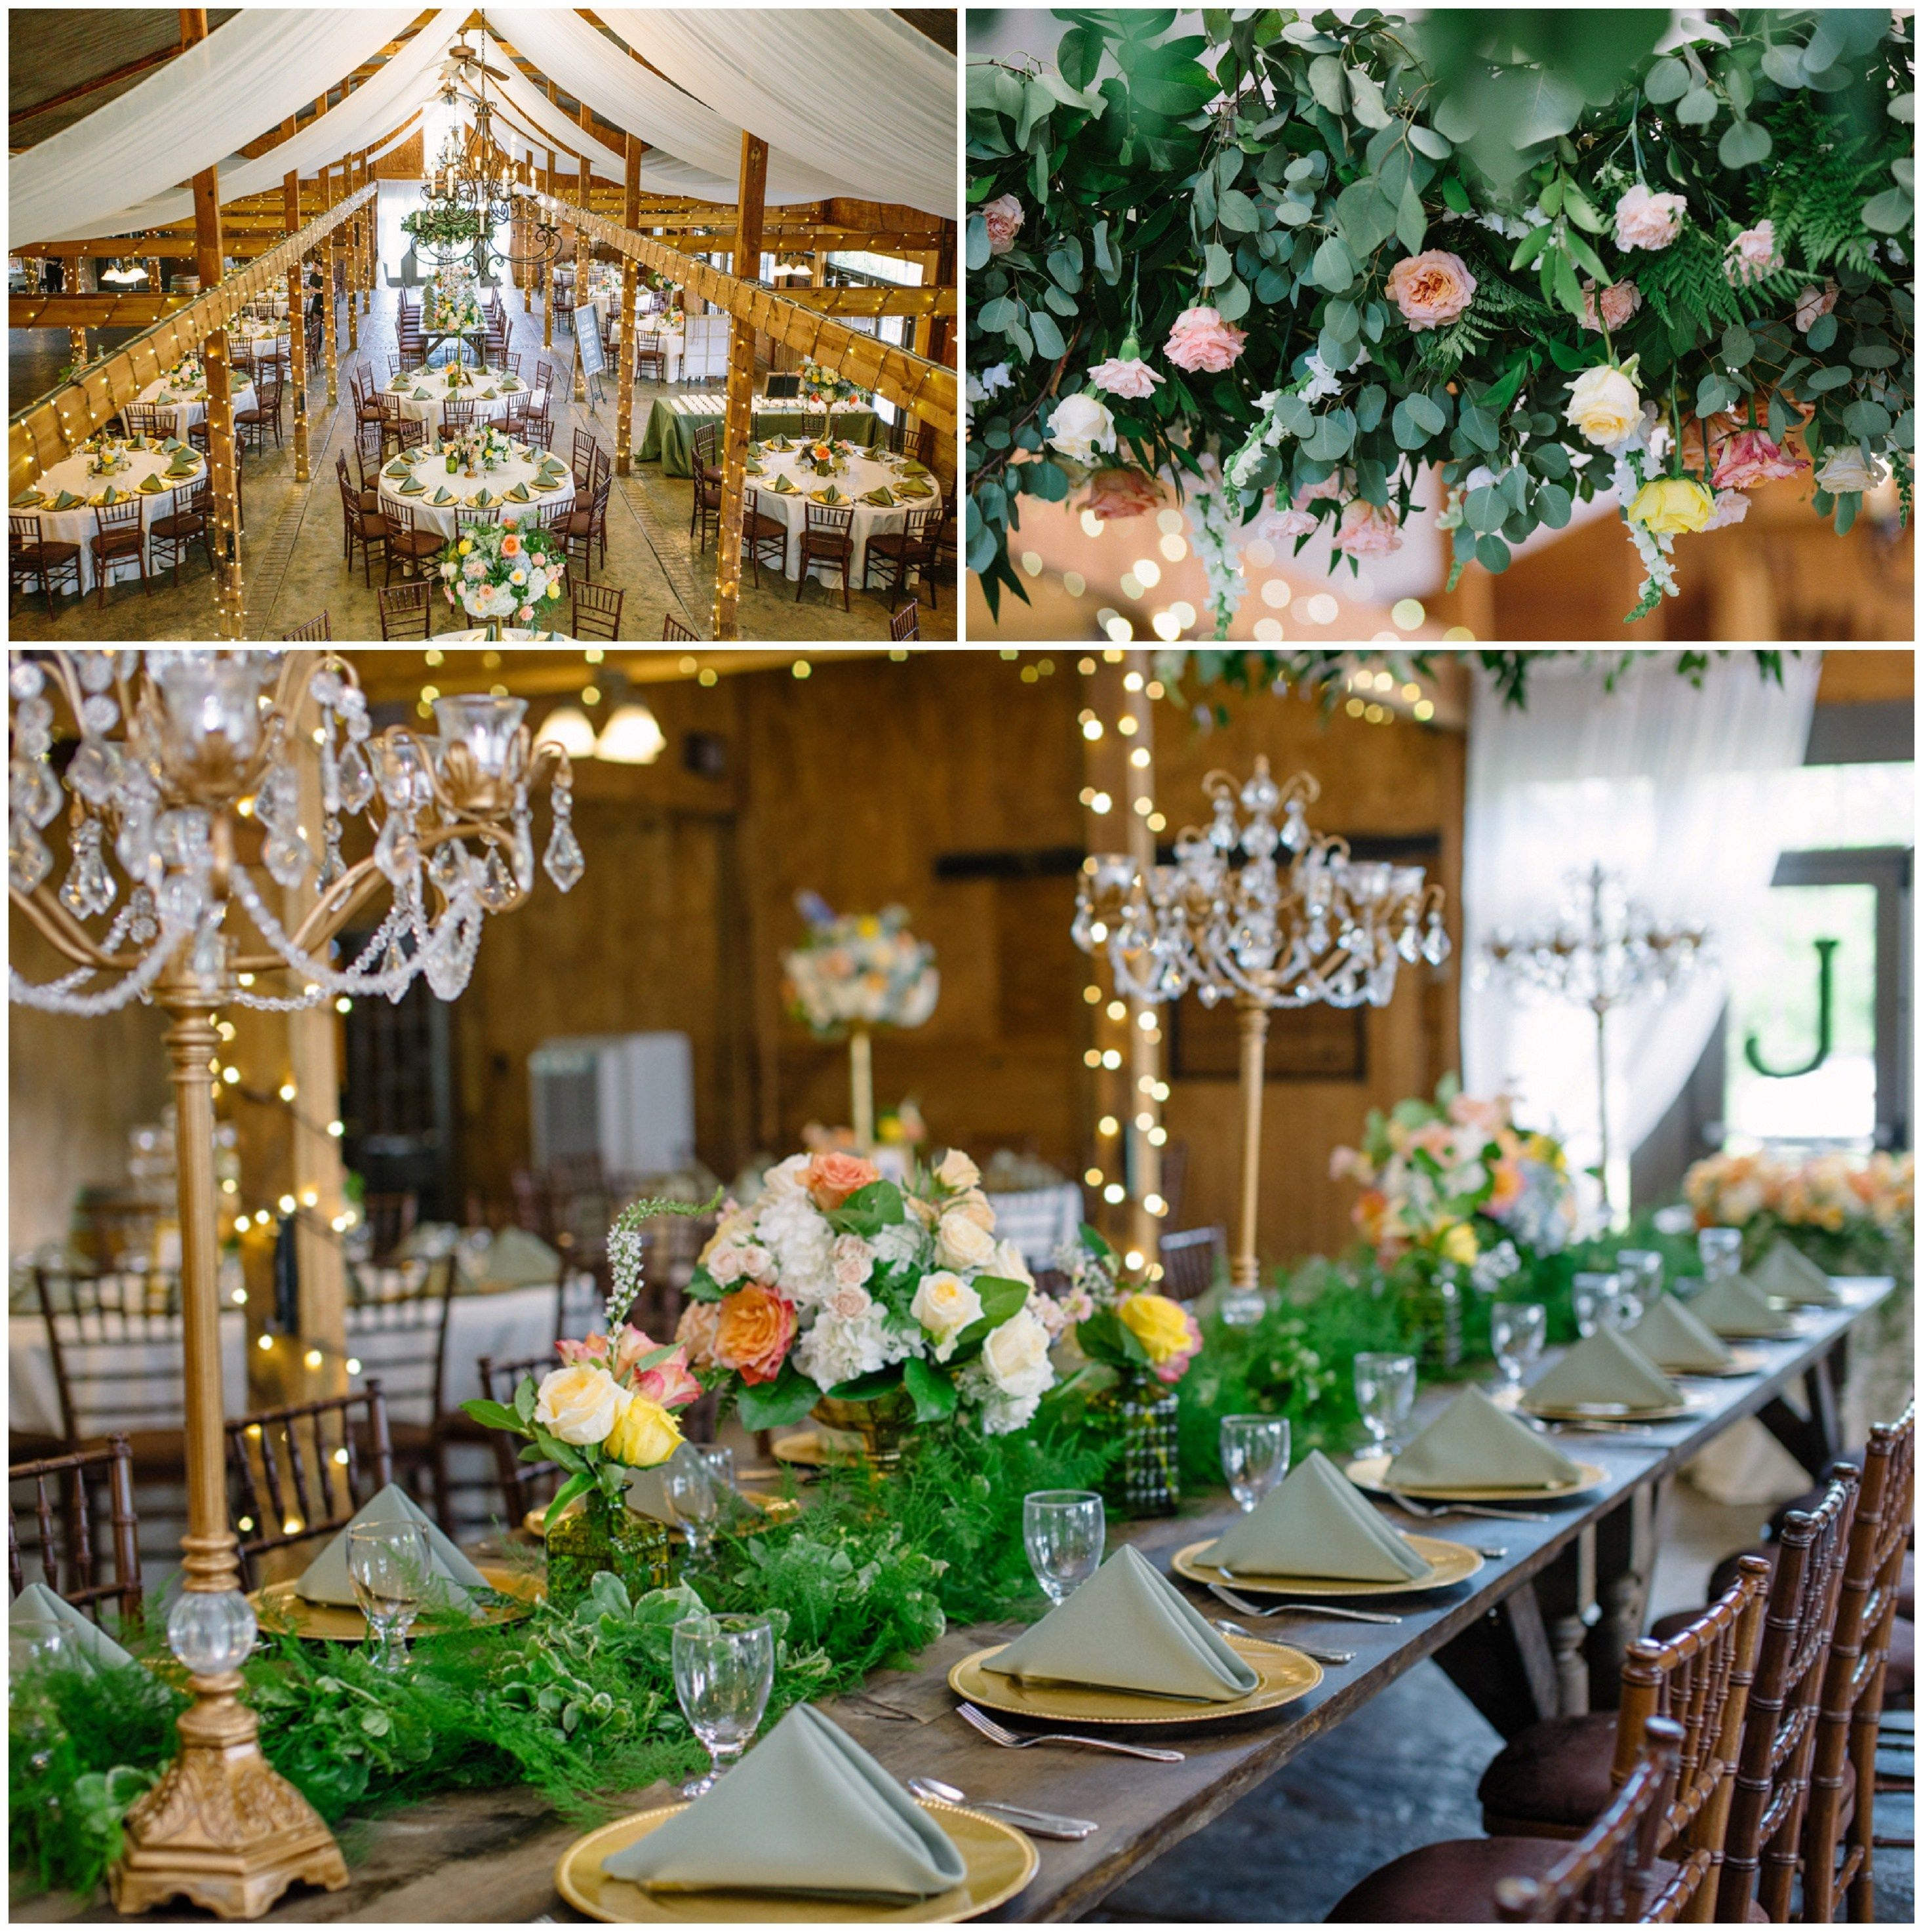 Summer wedding at Bluemont vineyards in Virginia and featuring Landsdowne Resort and Spa. Brittany Renee Photography